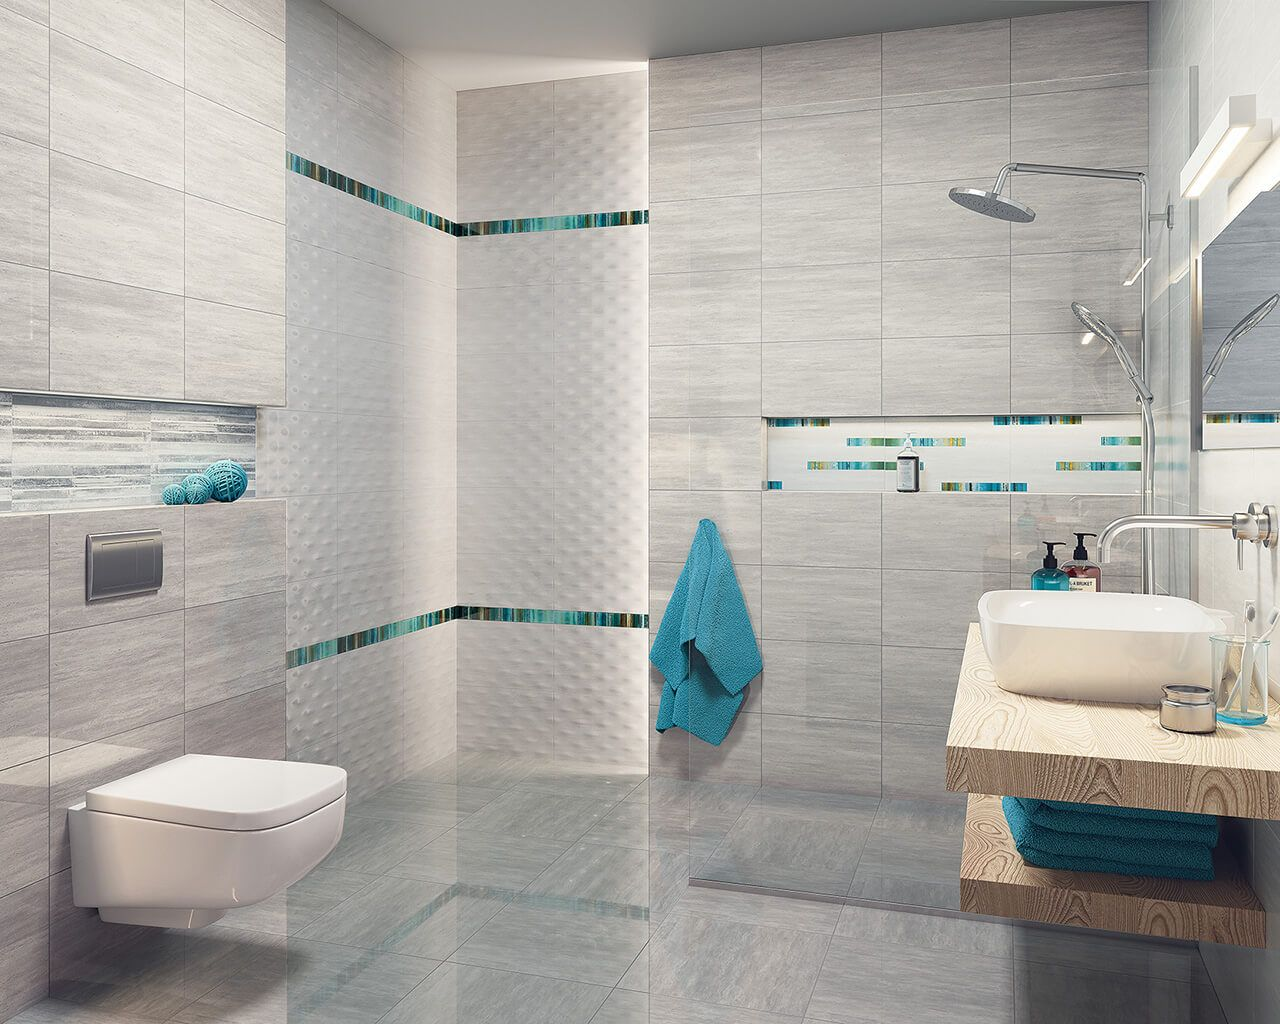 Light Grey Bathroom With Turquoise Decorations